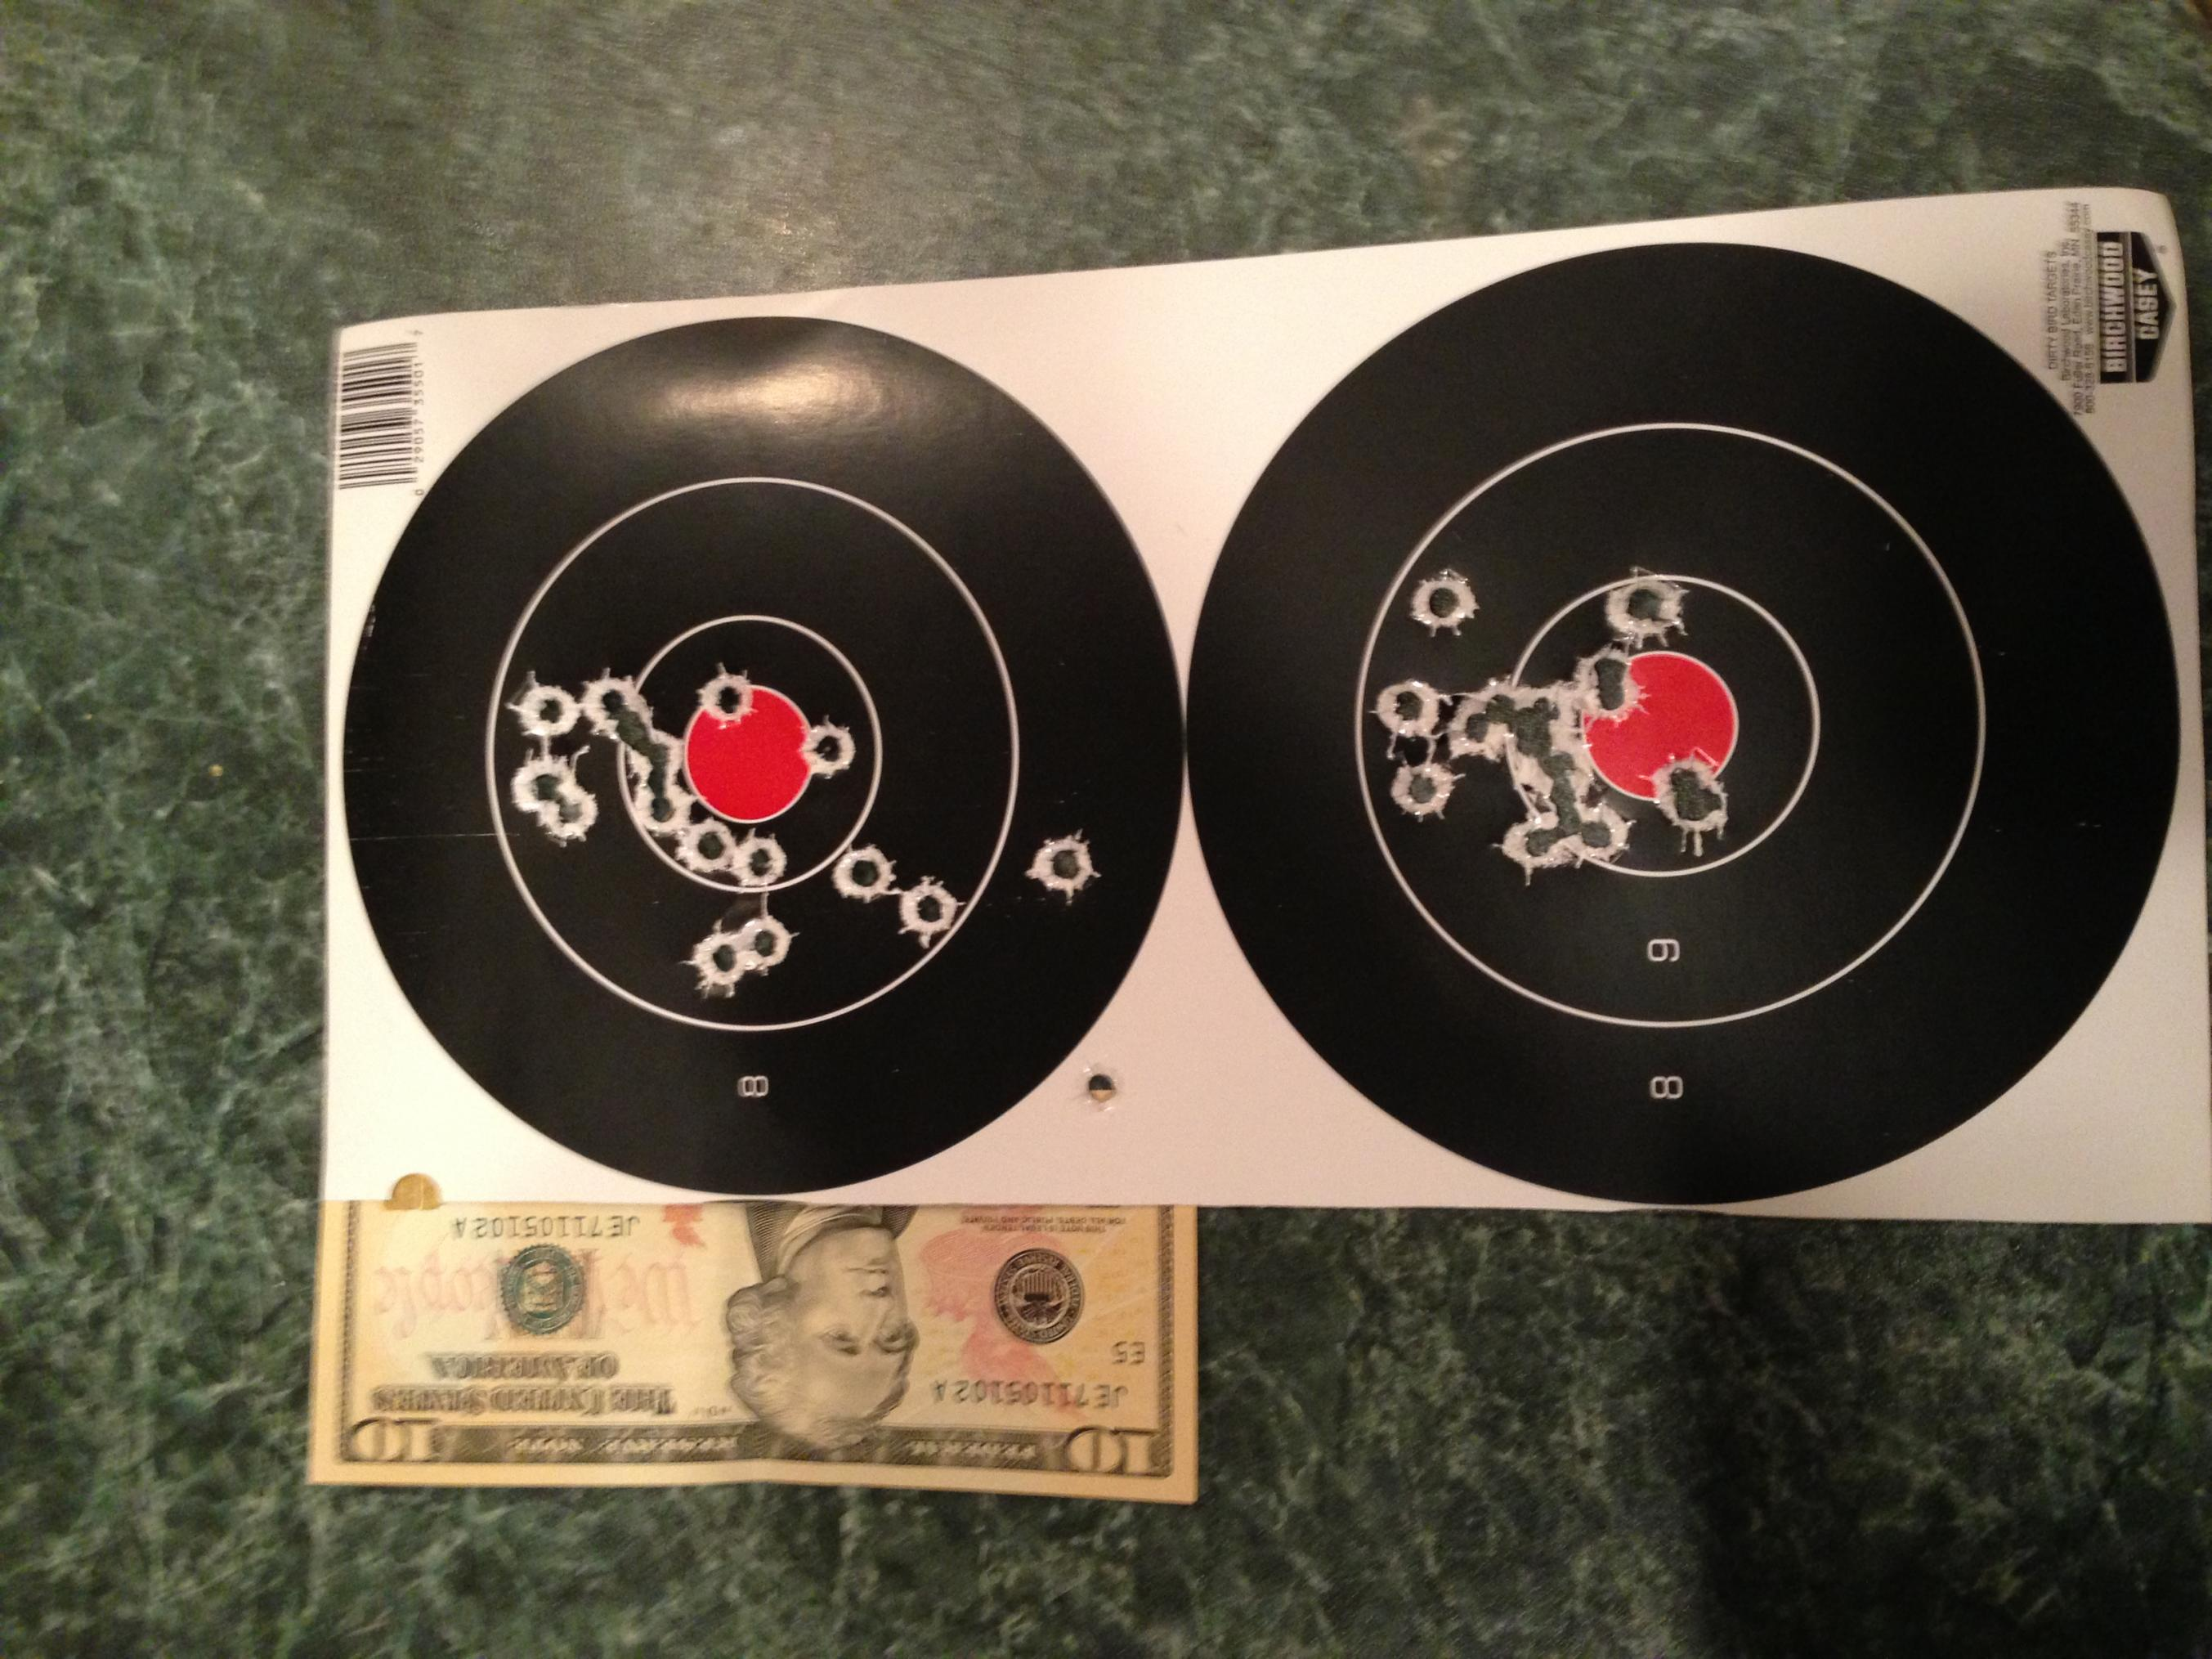 New FNH FNS 9mm - Good Shooter, Good Value :)-fns-target.jpg